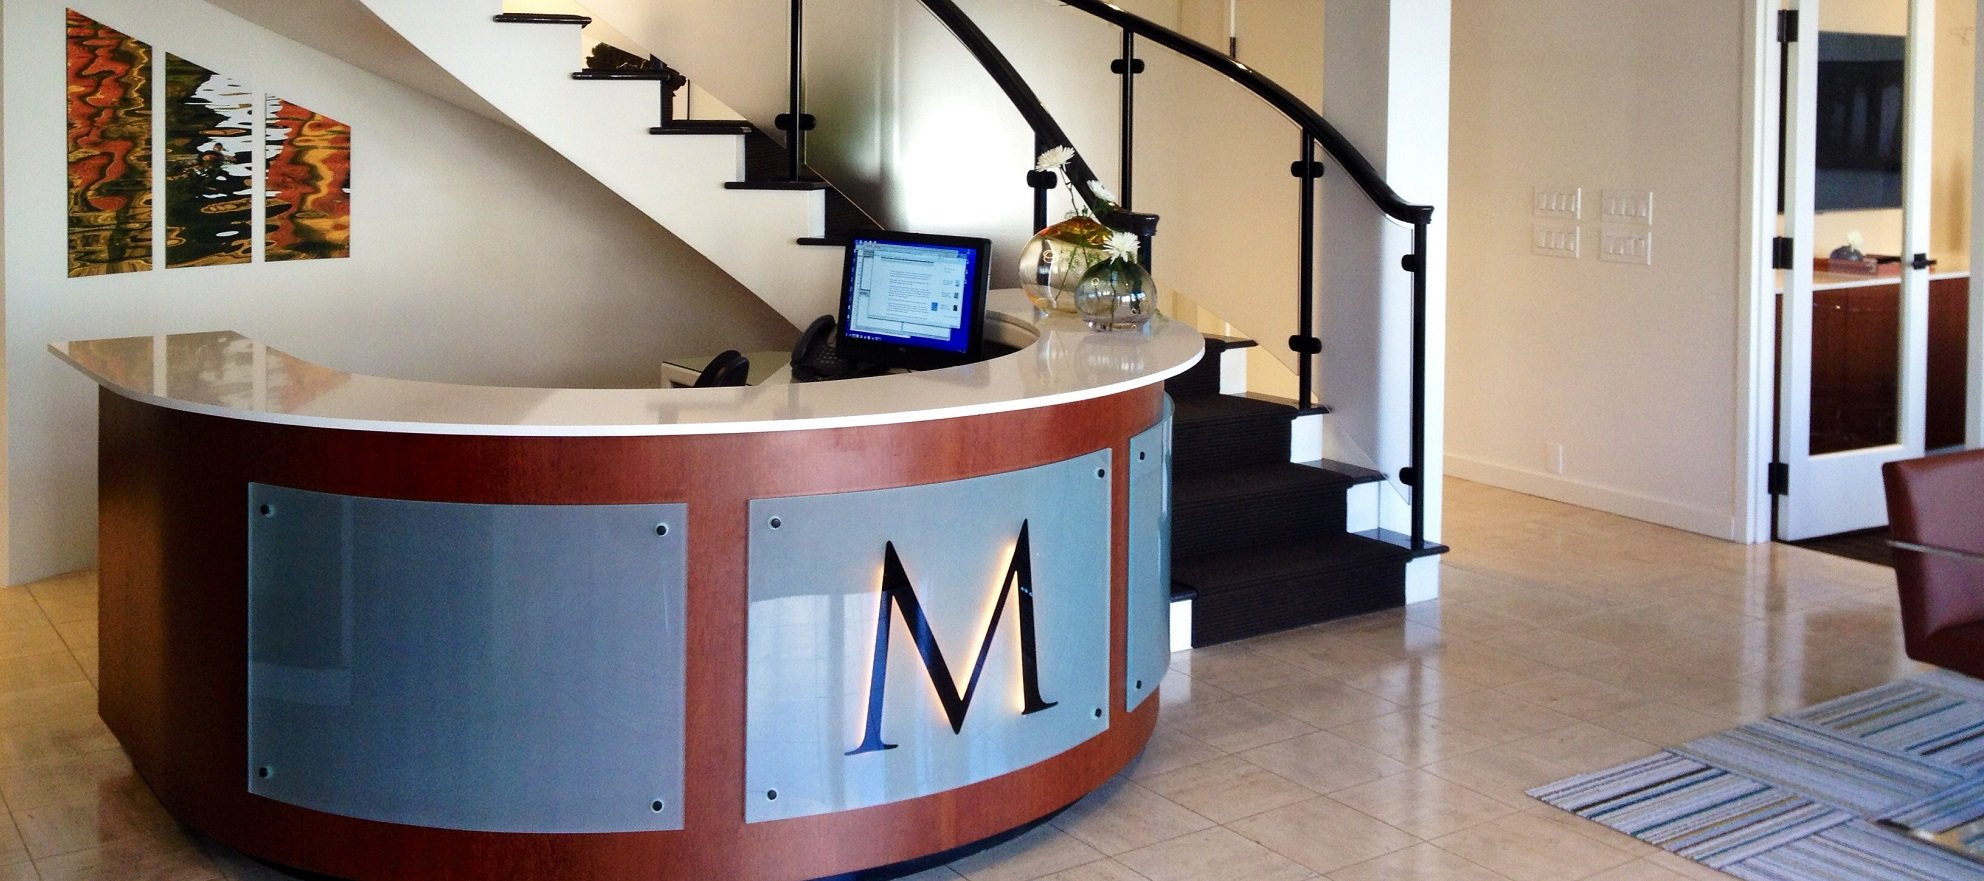 Real estate office of the day: McGuire Real Estate